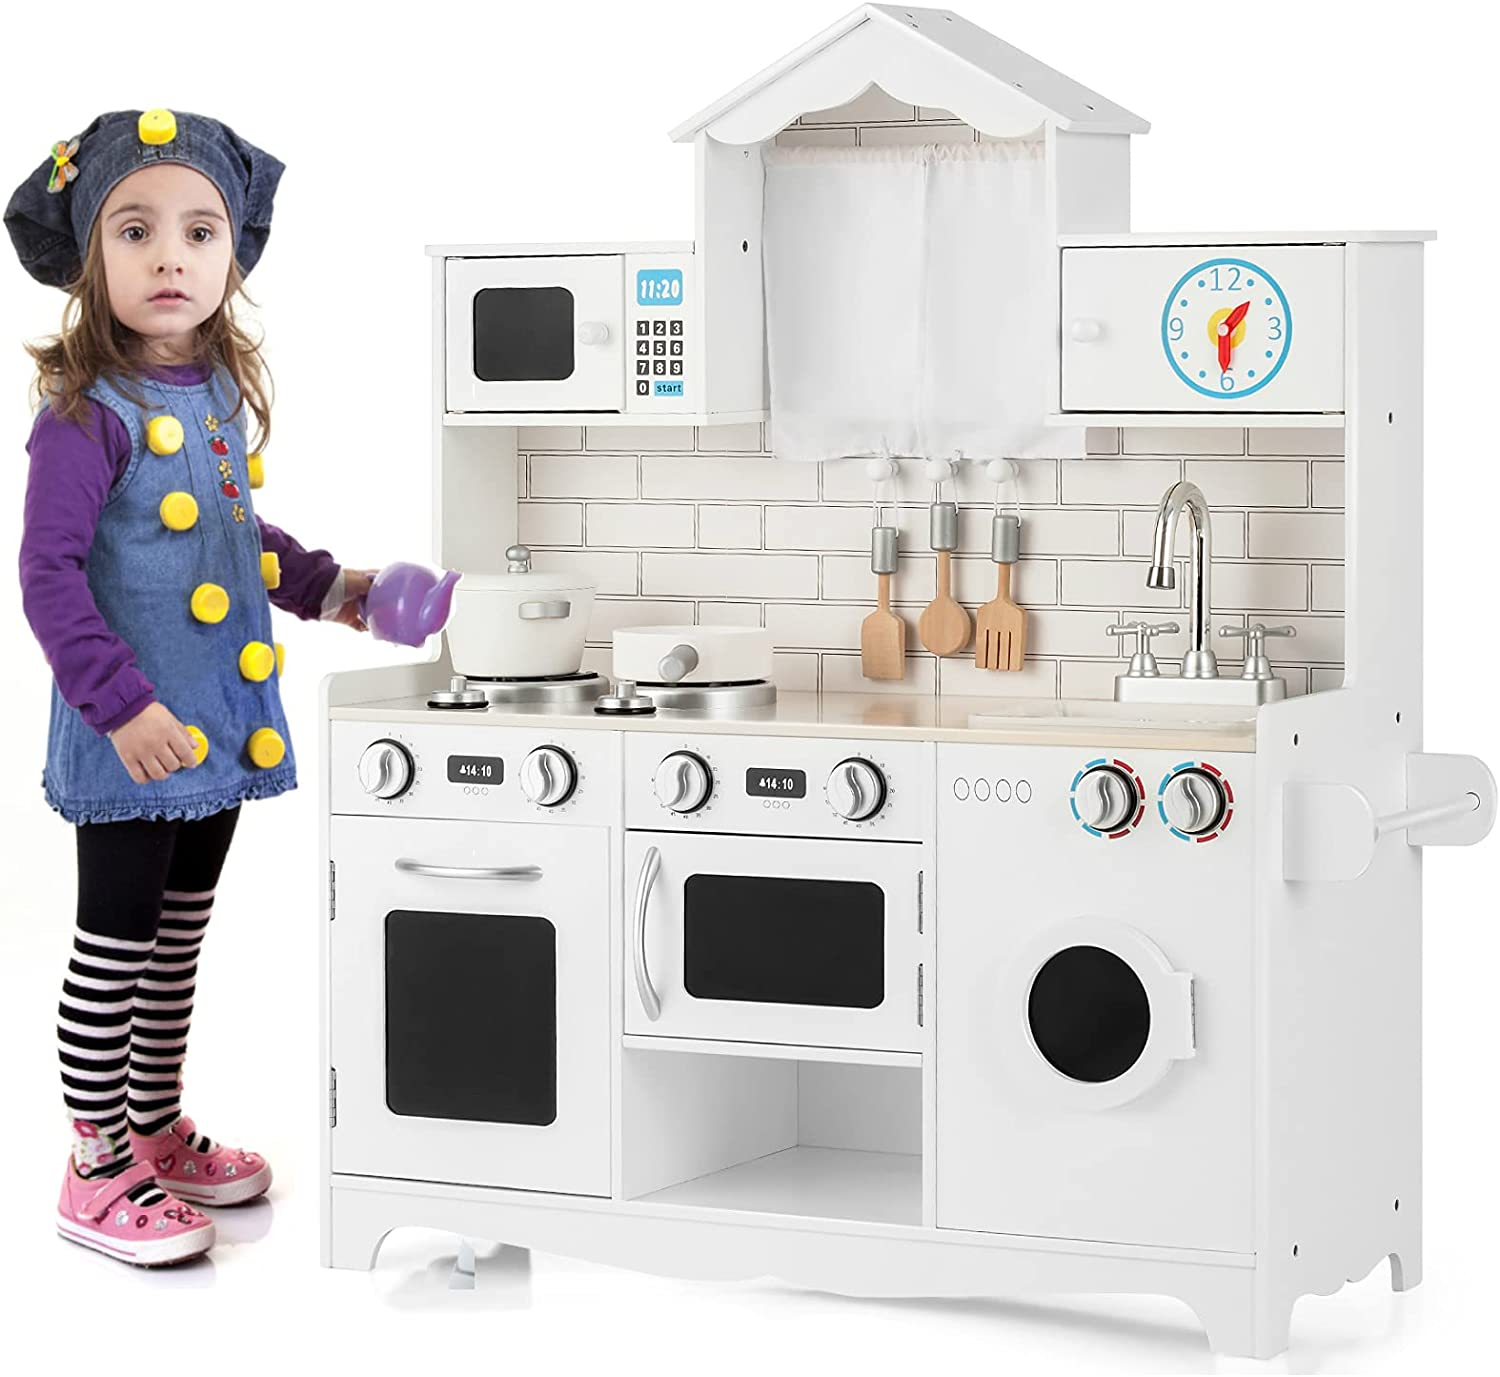 HONEY JOY Wooden Kitchen Playset for Kids, Rooftop Style Pretend Play Cooking Toy Set w/Washing Machine, Oven, Microwave, Sink, Stoves, Modern Realistic Cooking Set for Toddlers(White)